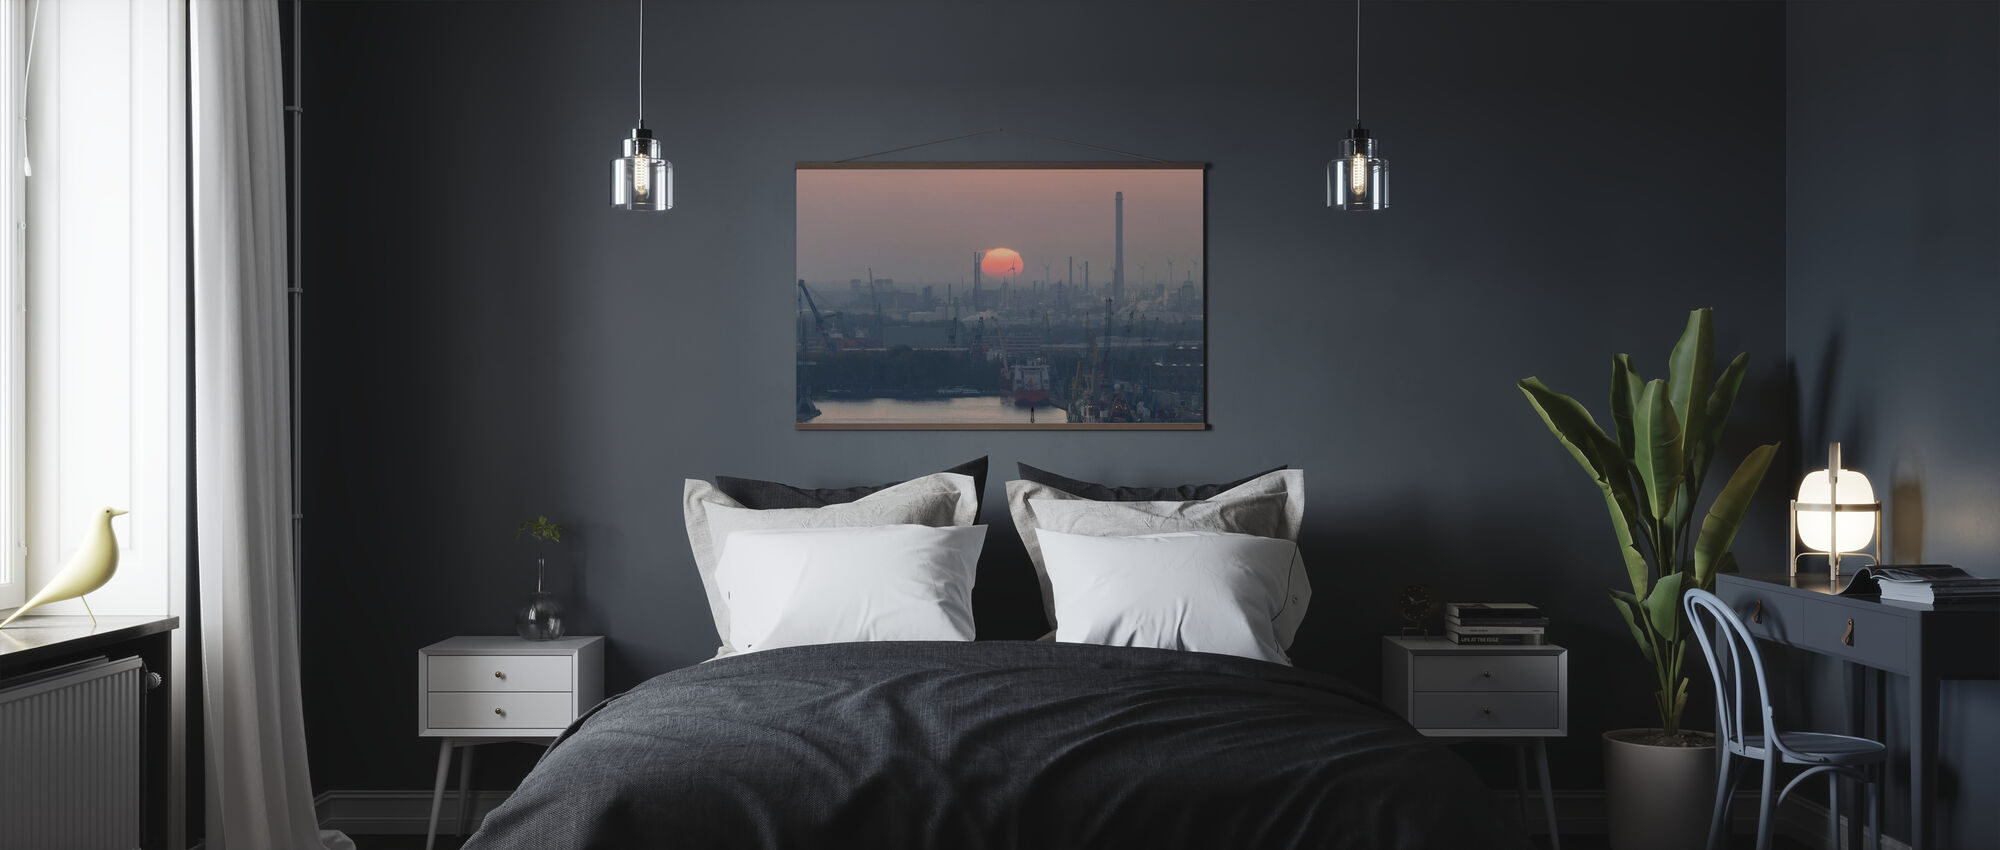 Rotterdam Port at Sunset - Poster - Bedroom